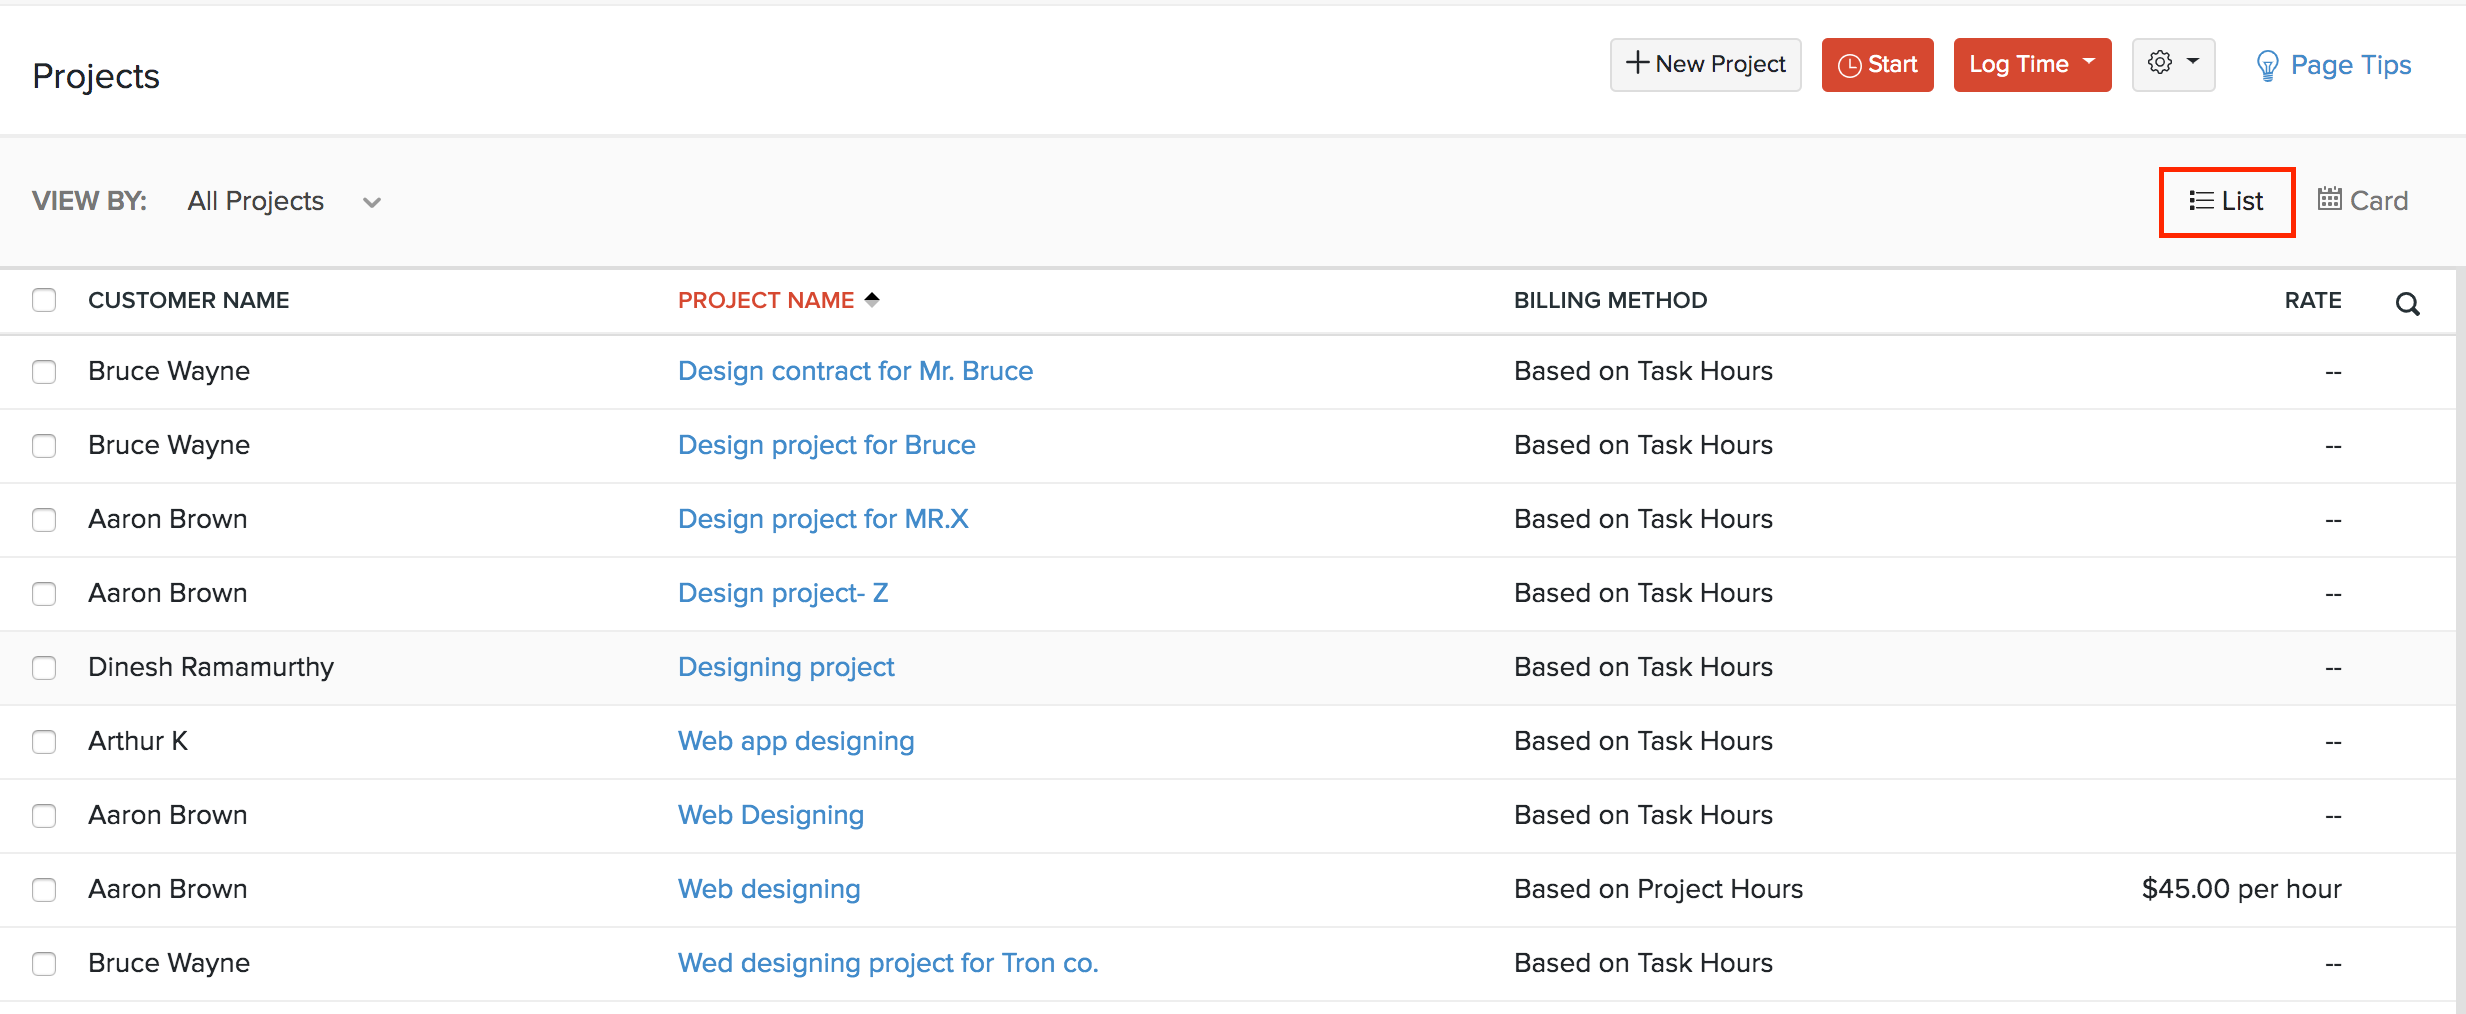 List View Projects